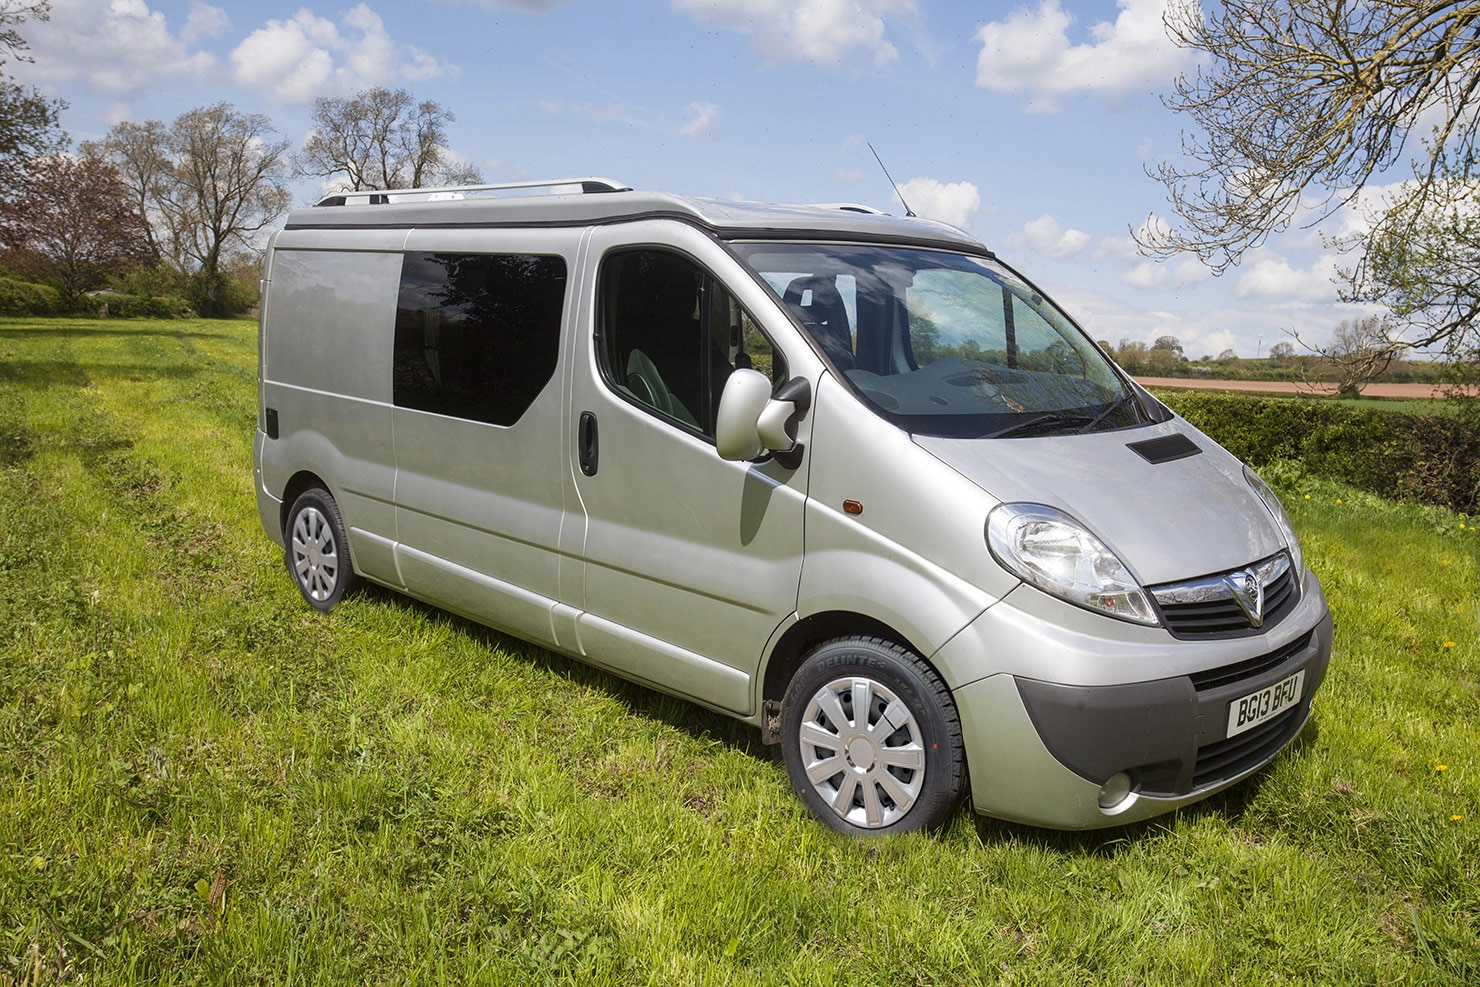 Sylvester Campervan exterior styling. Showing the sleek modern style, belying the interior!